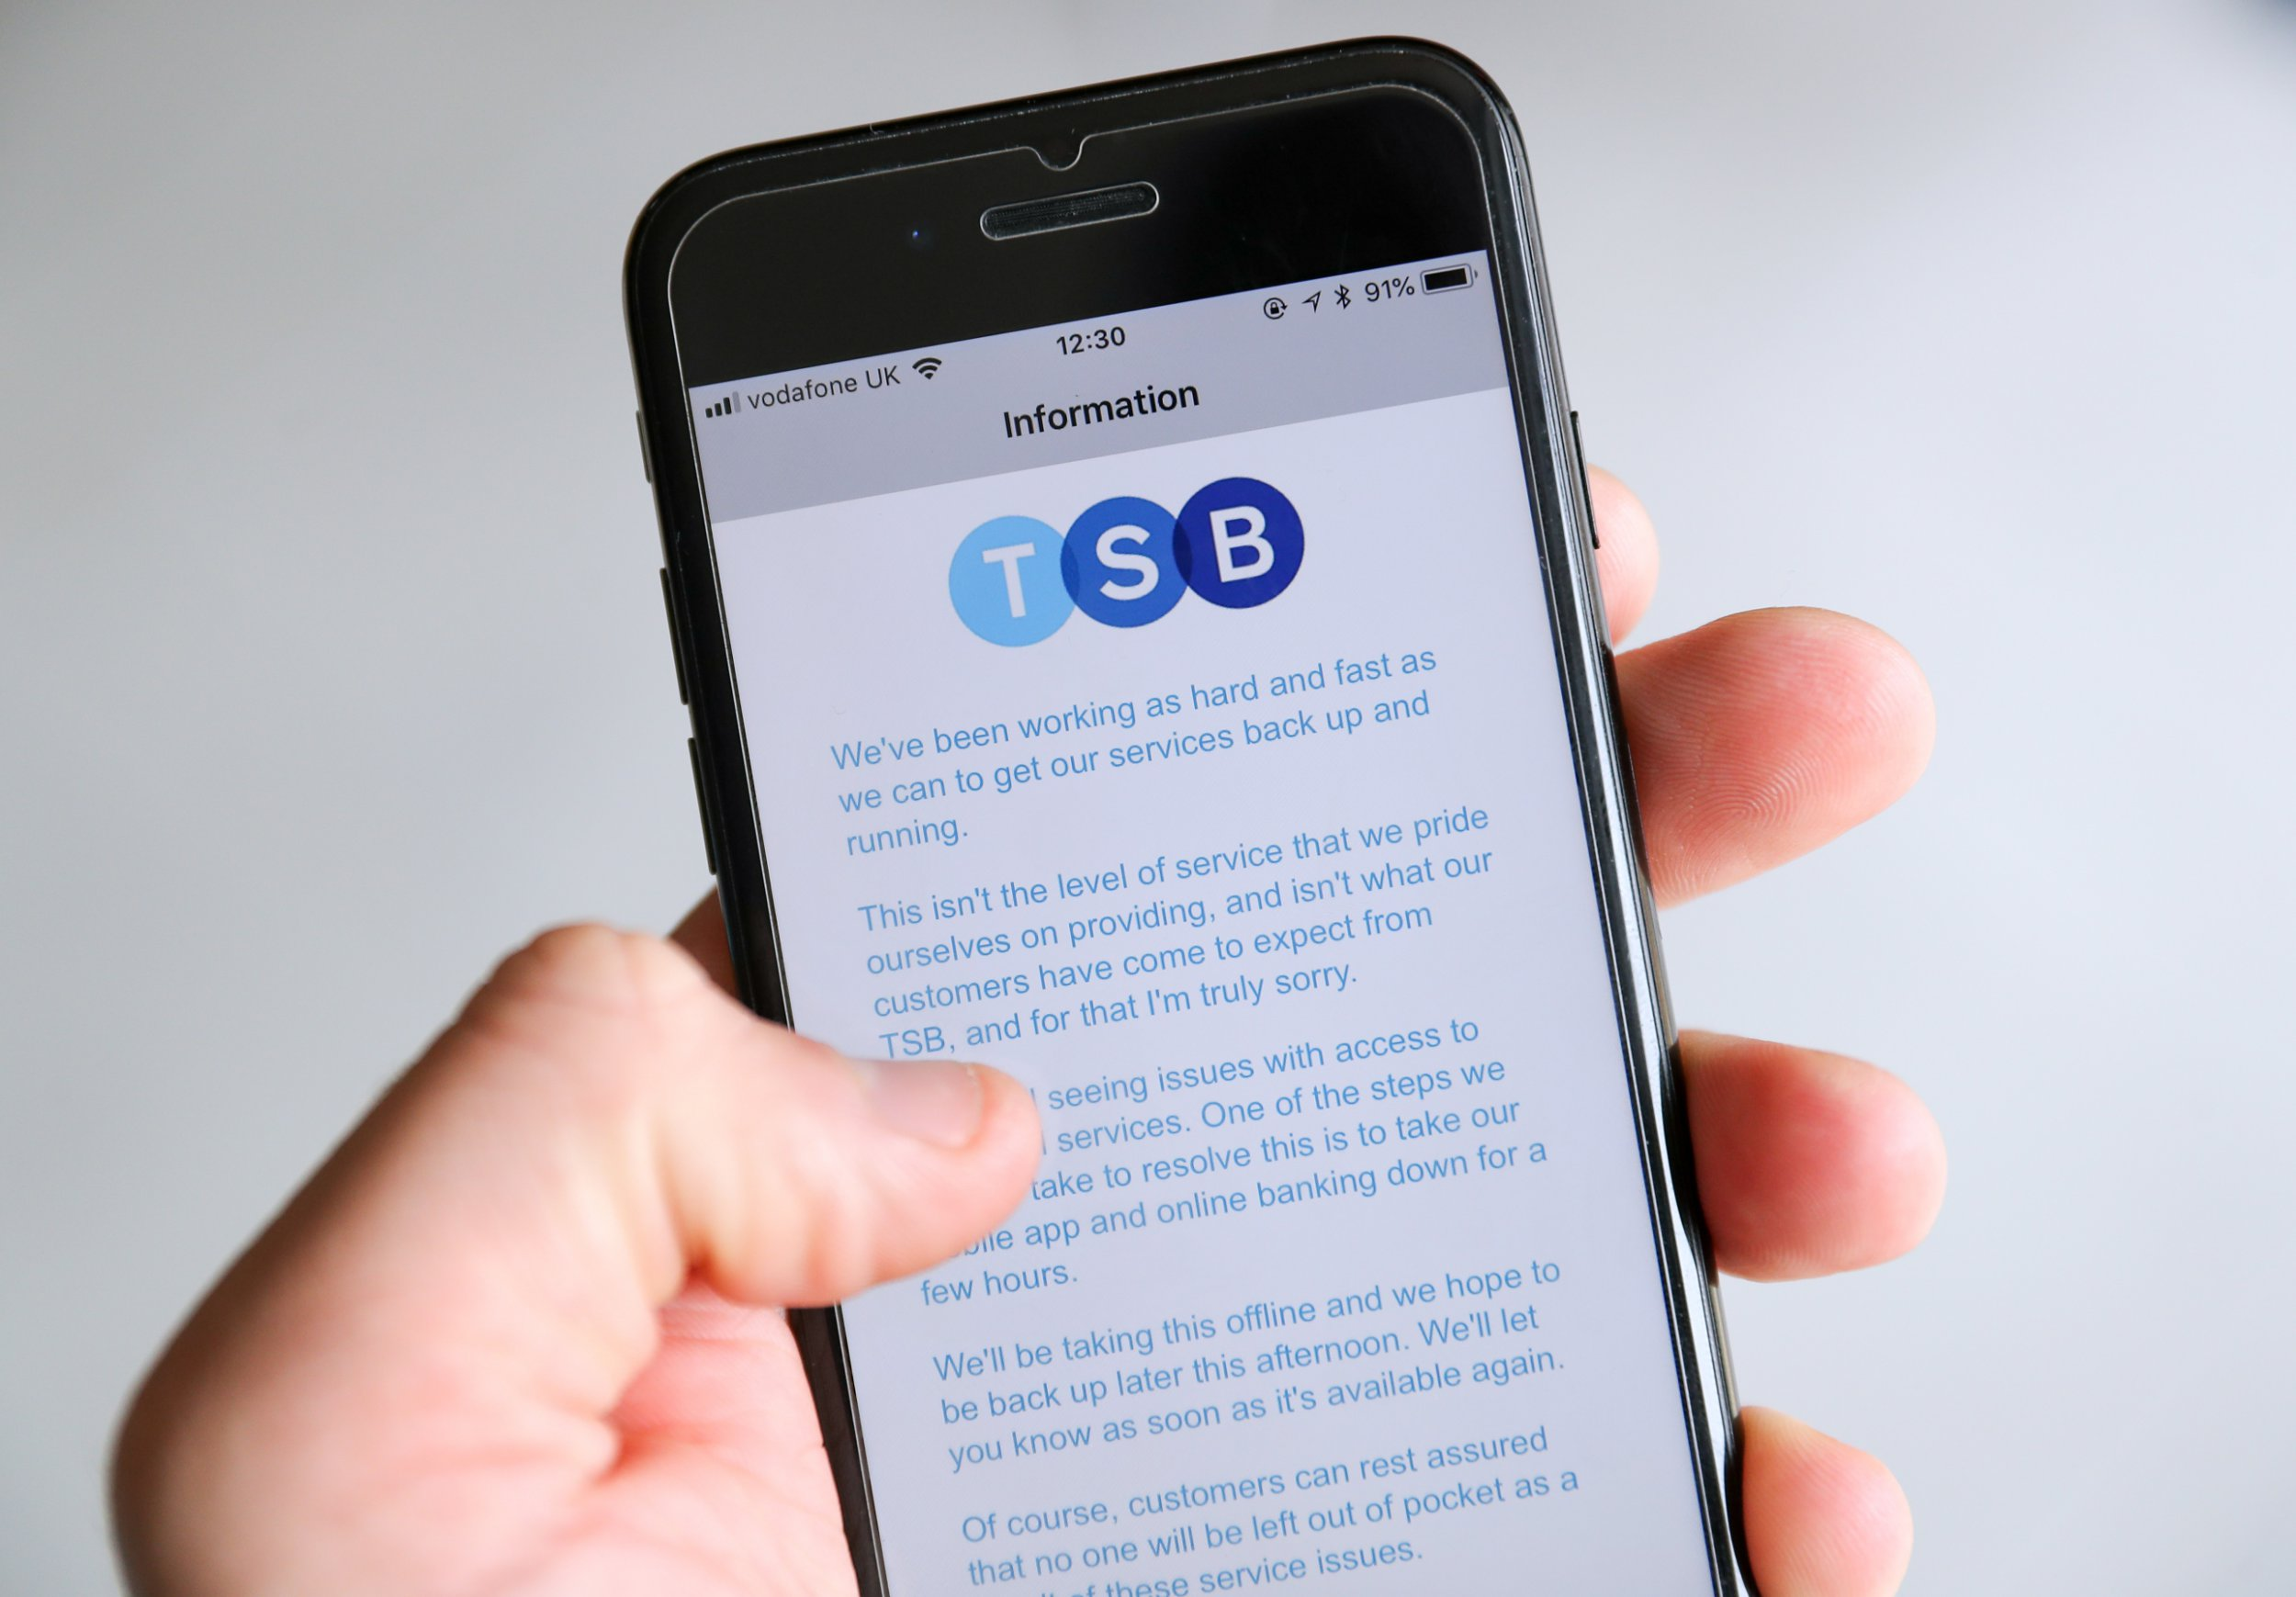 A customer using the TSB Online banking app on an iPhone reads a message from TSB CEO Paul Pester apologising for IT issues which left online customers unable to access their money and some able to see other people's accounts.